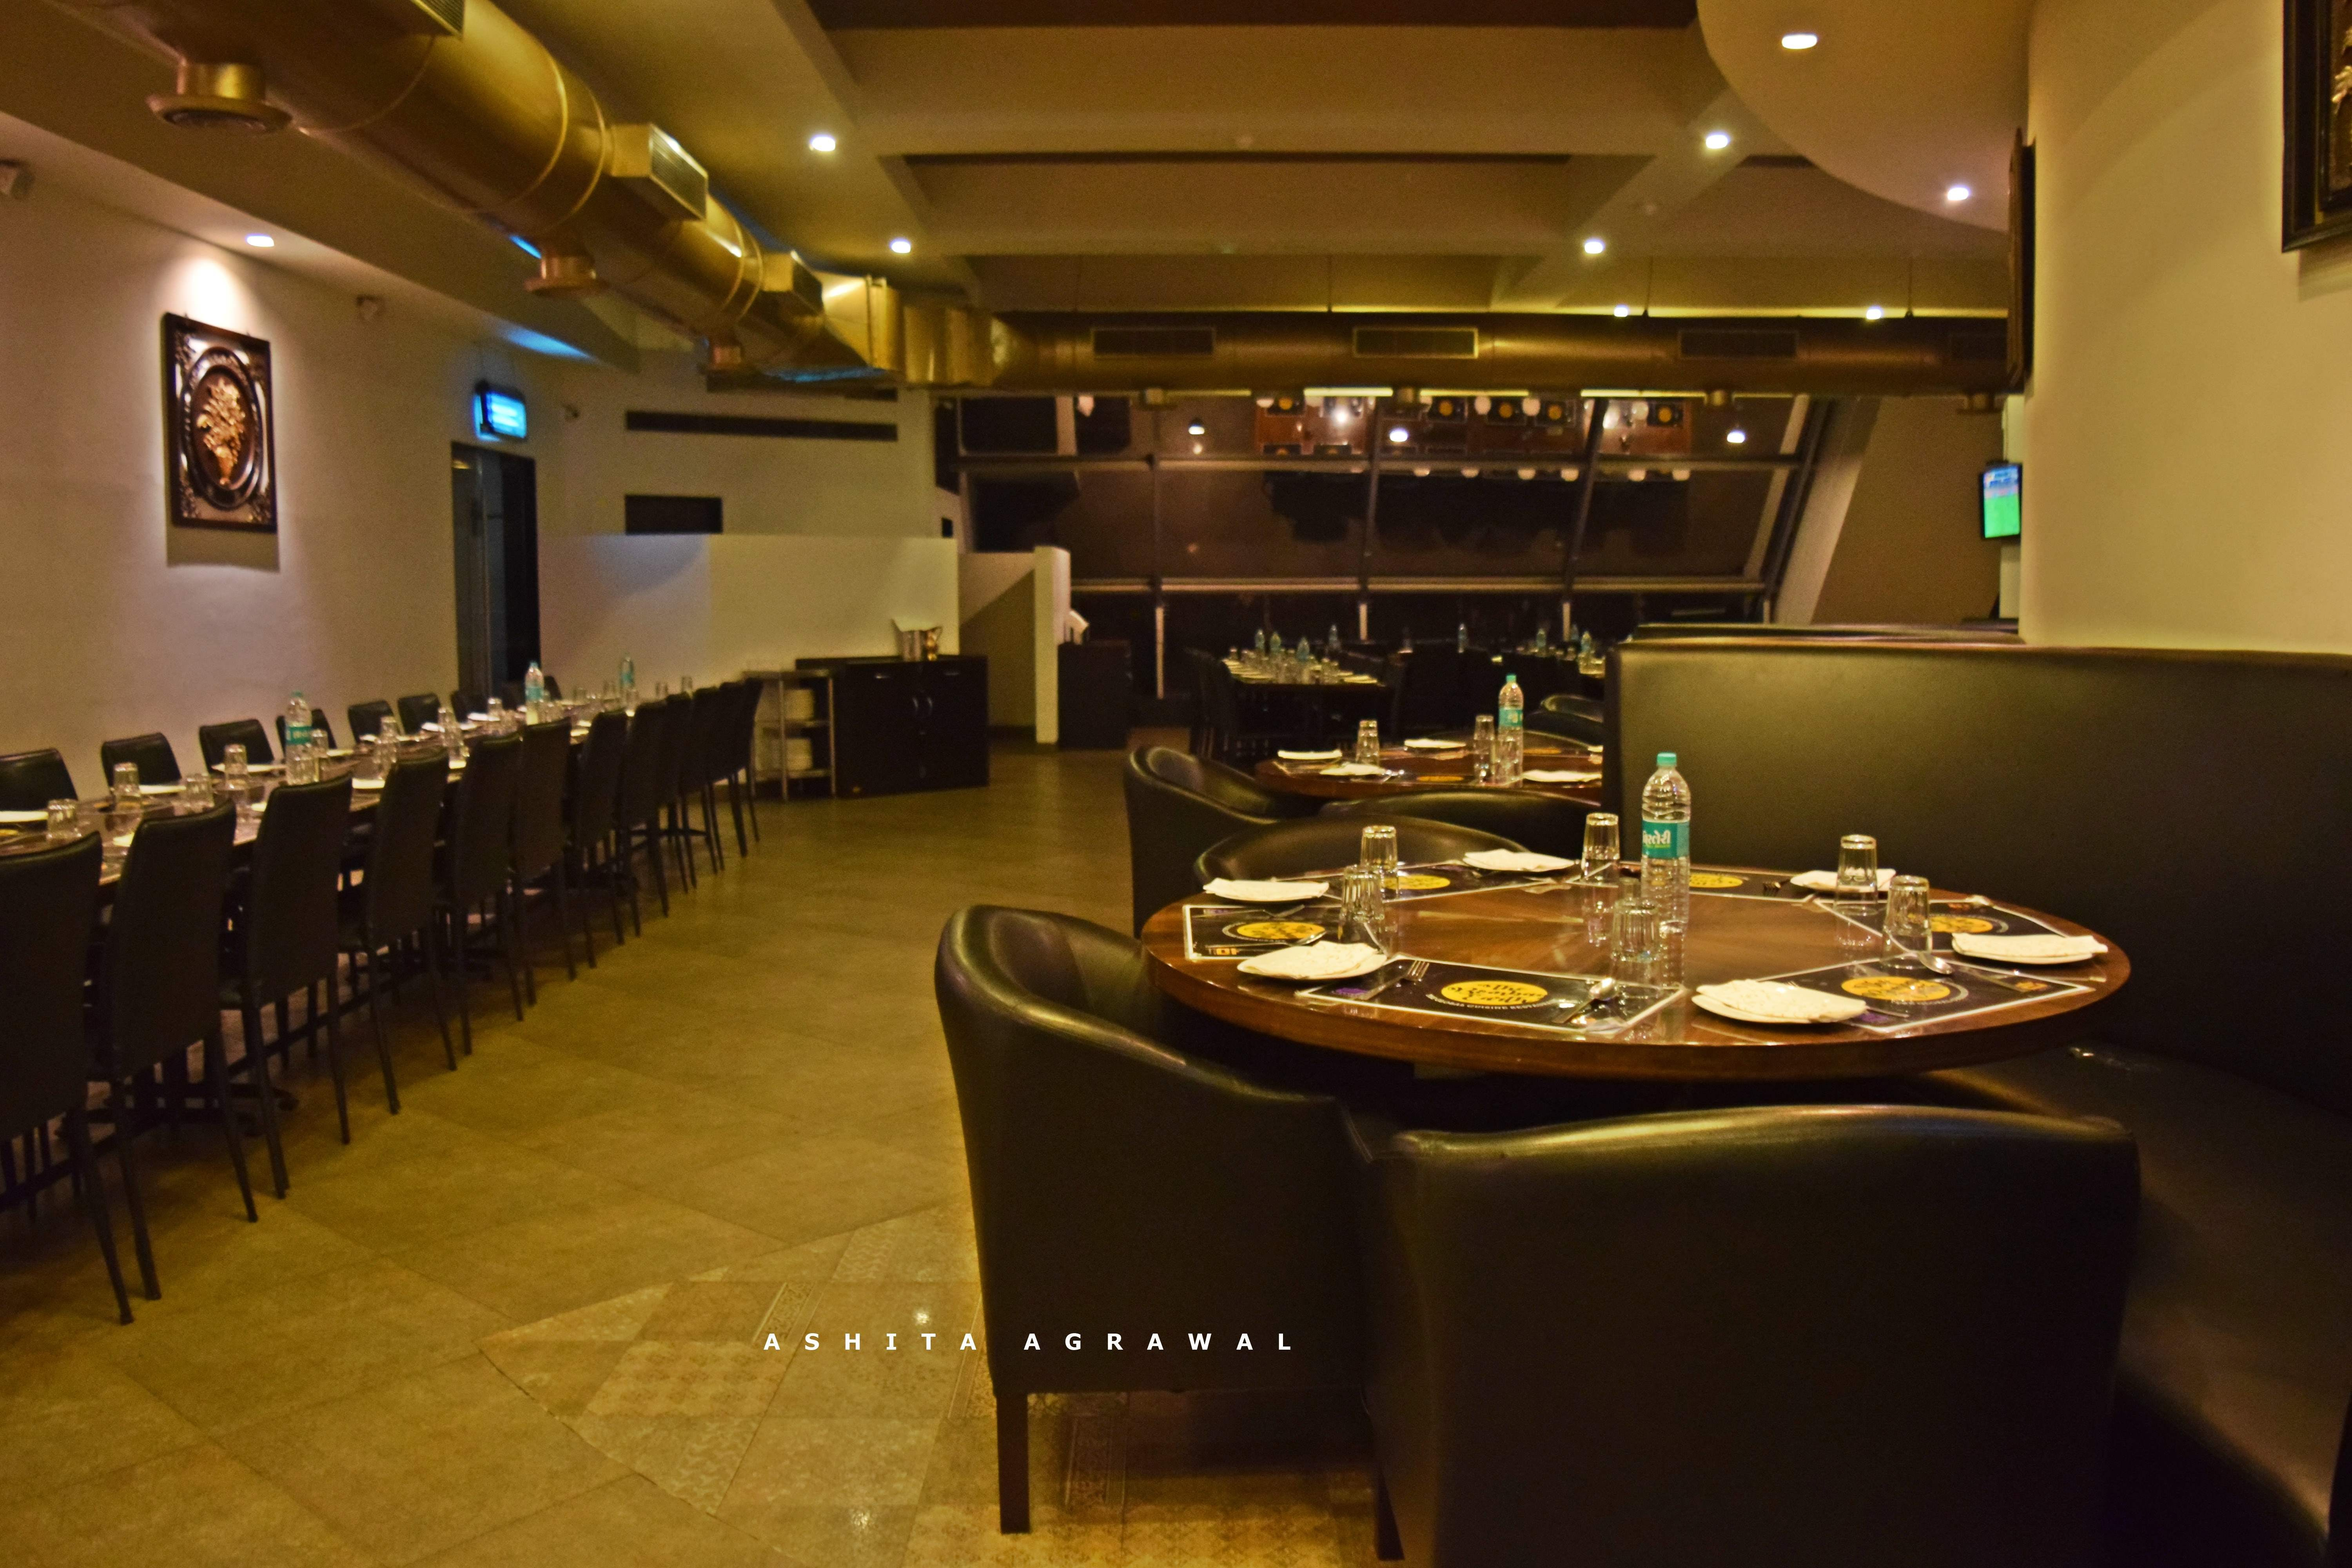 Restaurant,Room,Building,Meal,Interior design,Function hall,Table,Architecture,Banquet,Buffet